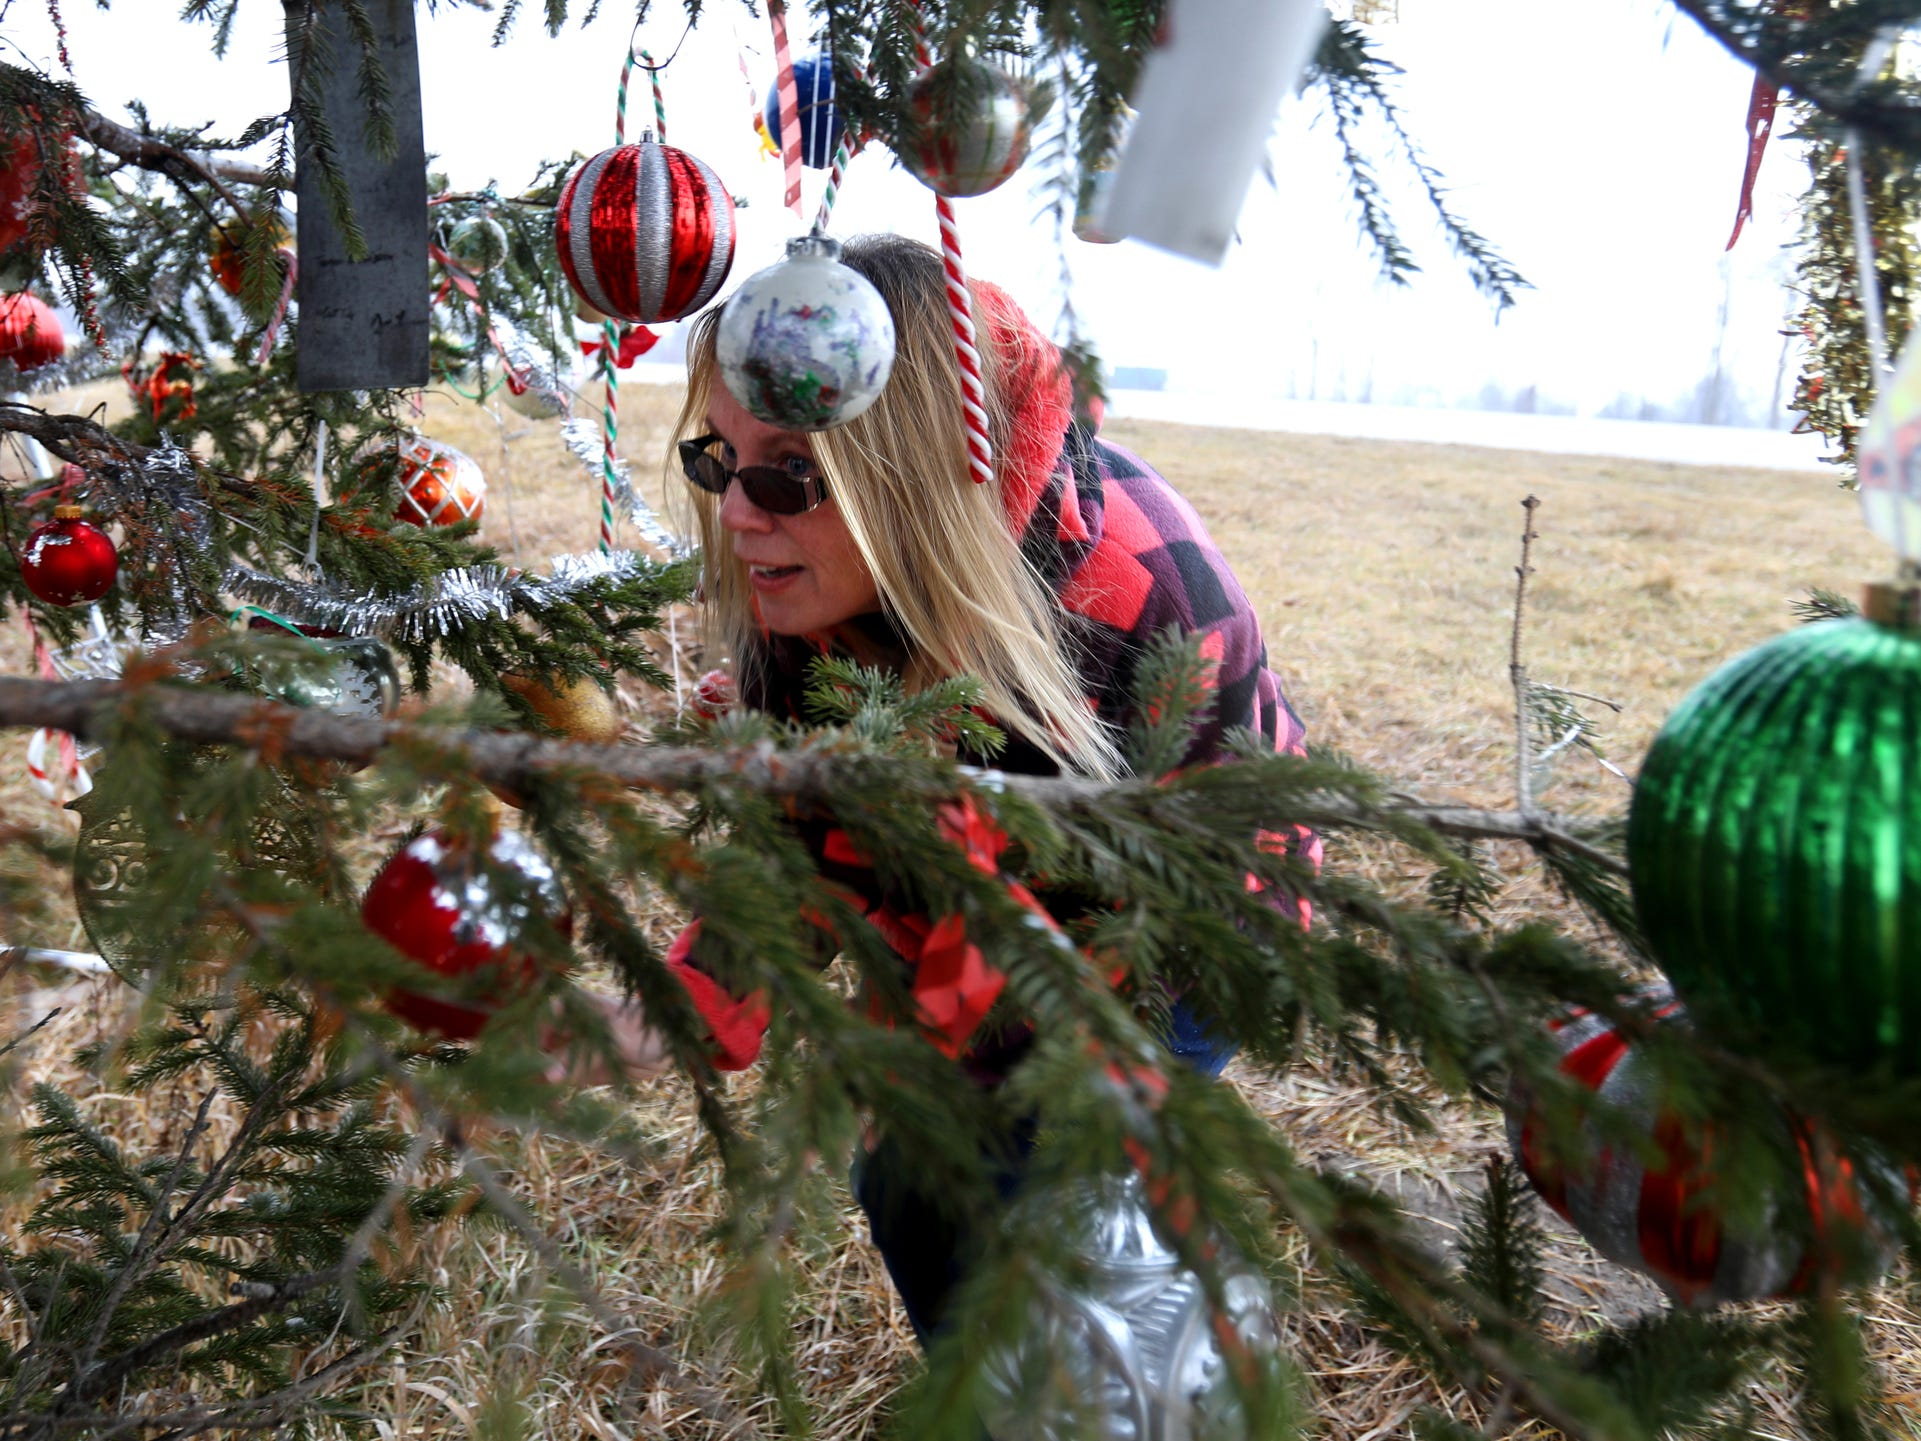 Kathy Porter looks at the newer Christmas ornaments that have been added to the tree that serves as a memorial for her son along I-75 in Moffatt Township, Michigan on Friday, Dec. 20, 2018.